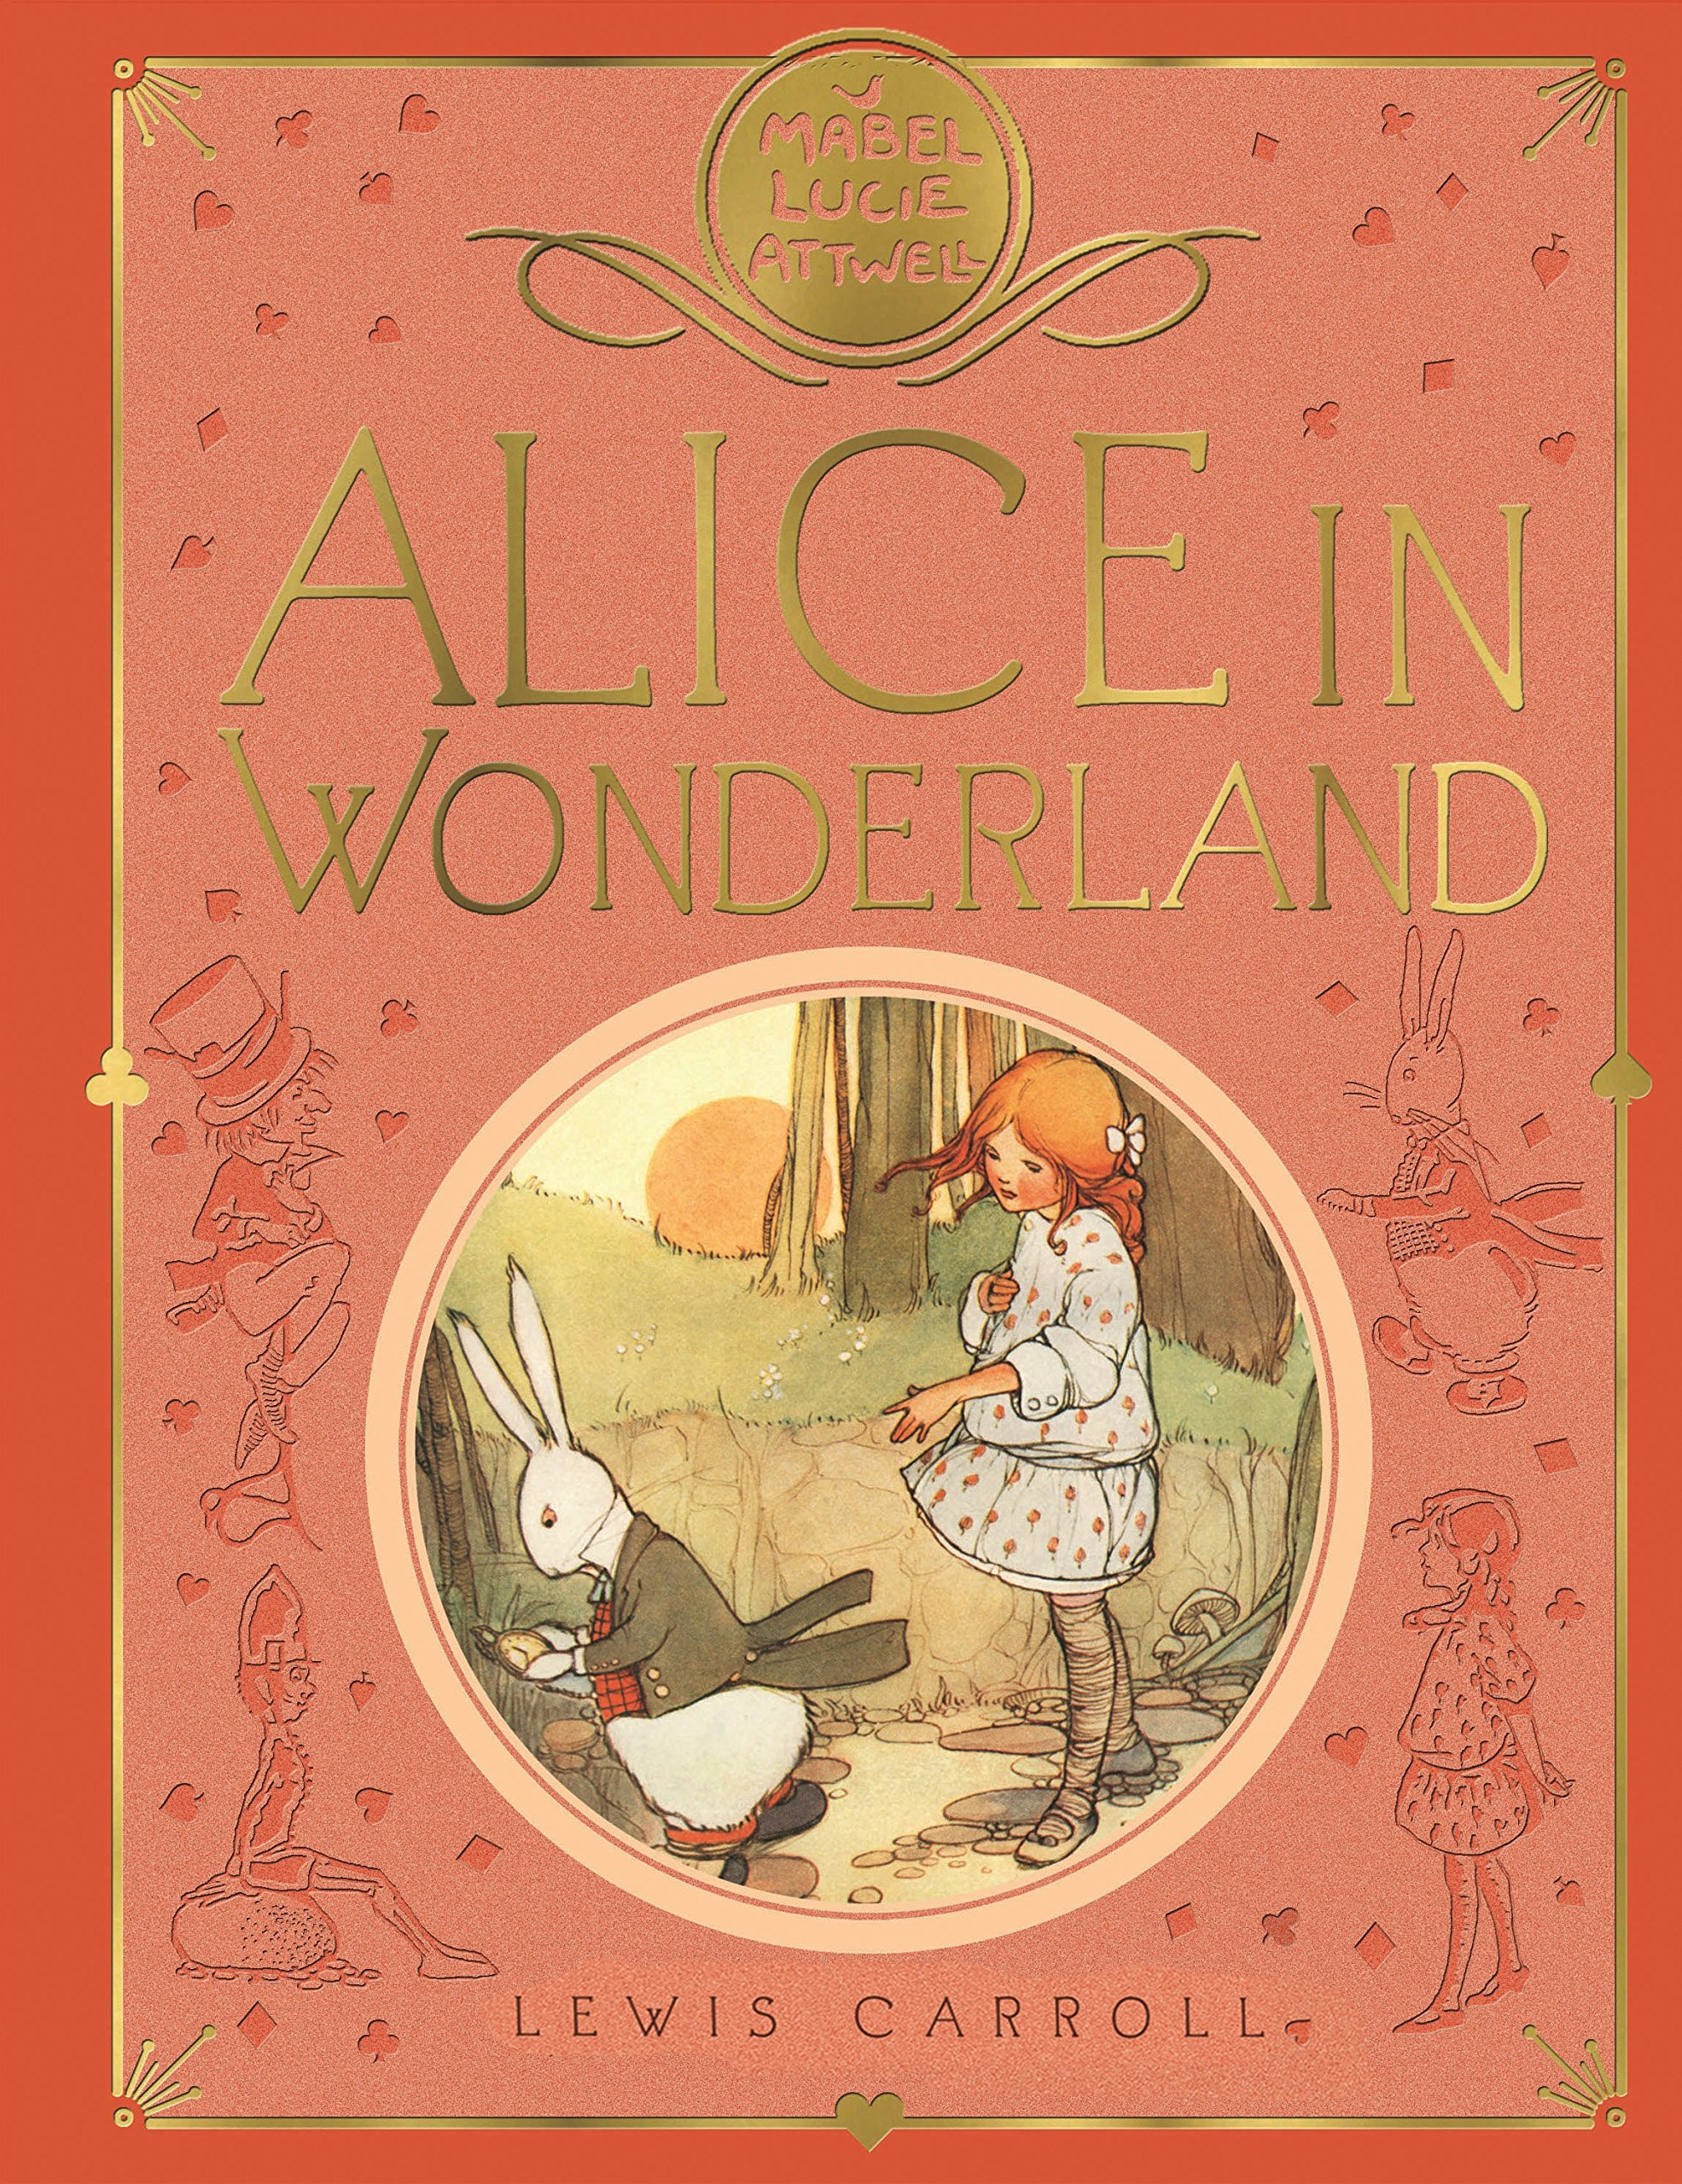 Mabel Lucie Attwell's Alice in Wonderland brilliant лампа напольная lucie